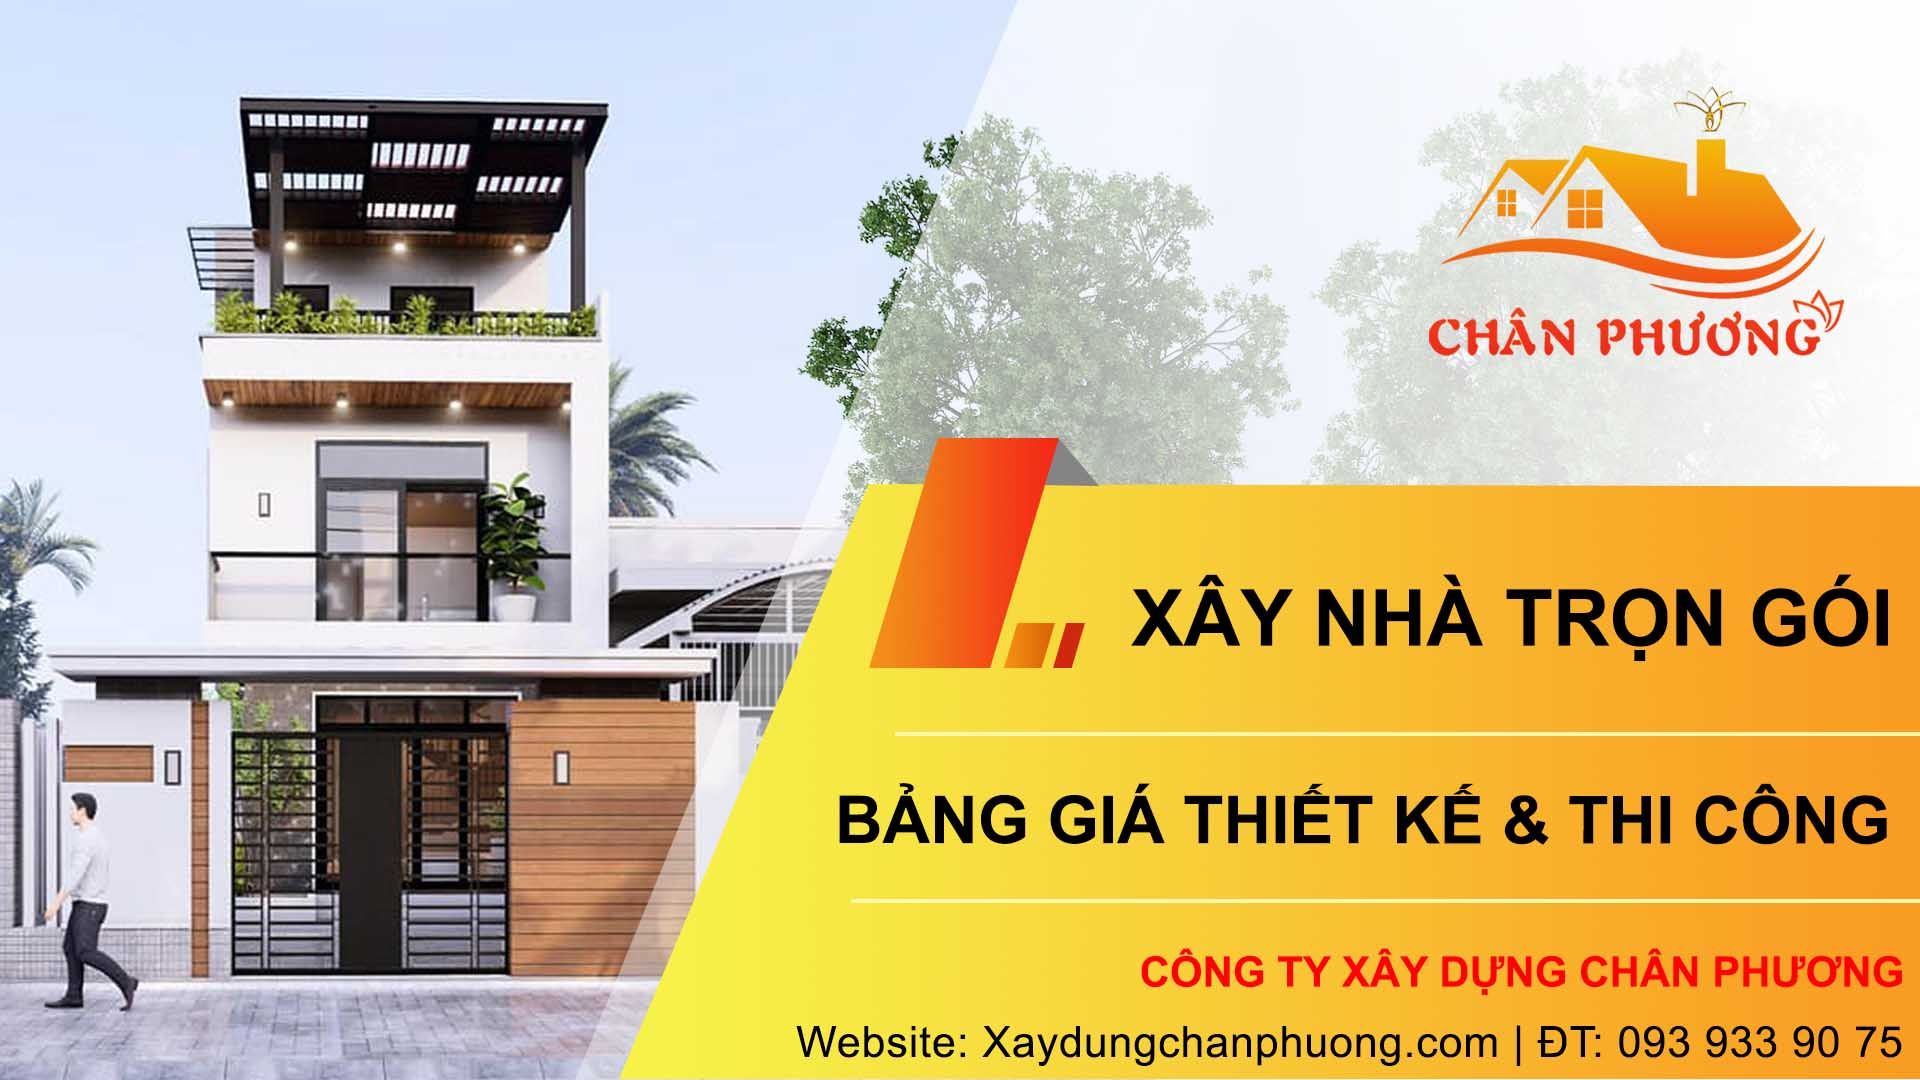 Dịch vụ xây dựng